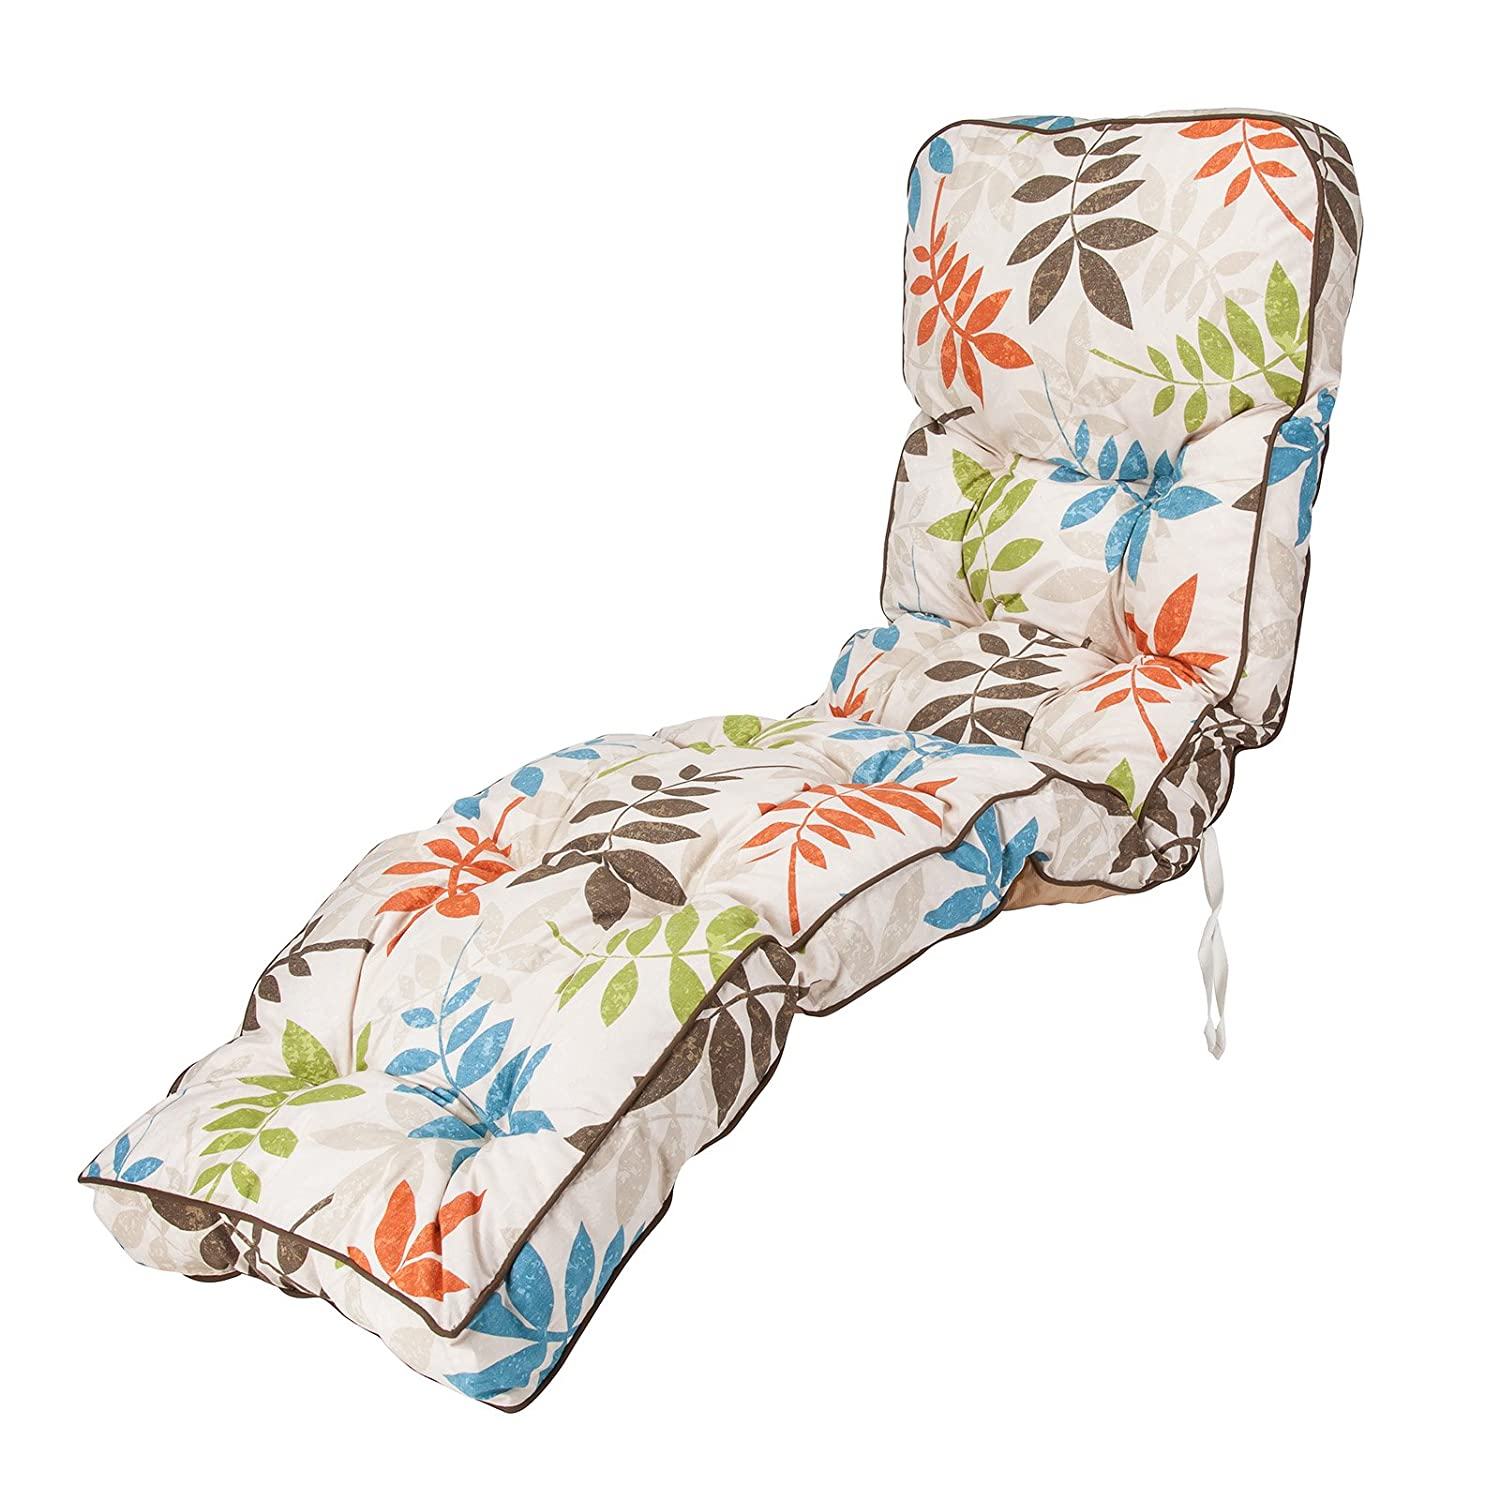 Replacement Classic Outdoor Garden Reclining Relaxer Chair Cushion - Choice of Prints (Alexandra Beige Leaf) Alfresia